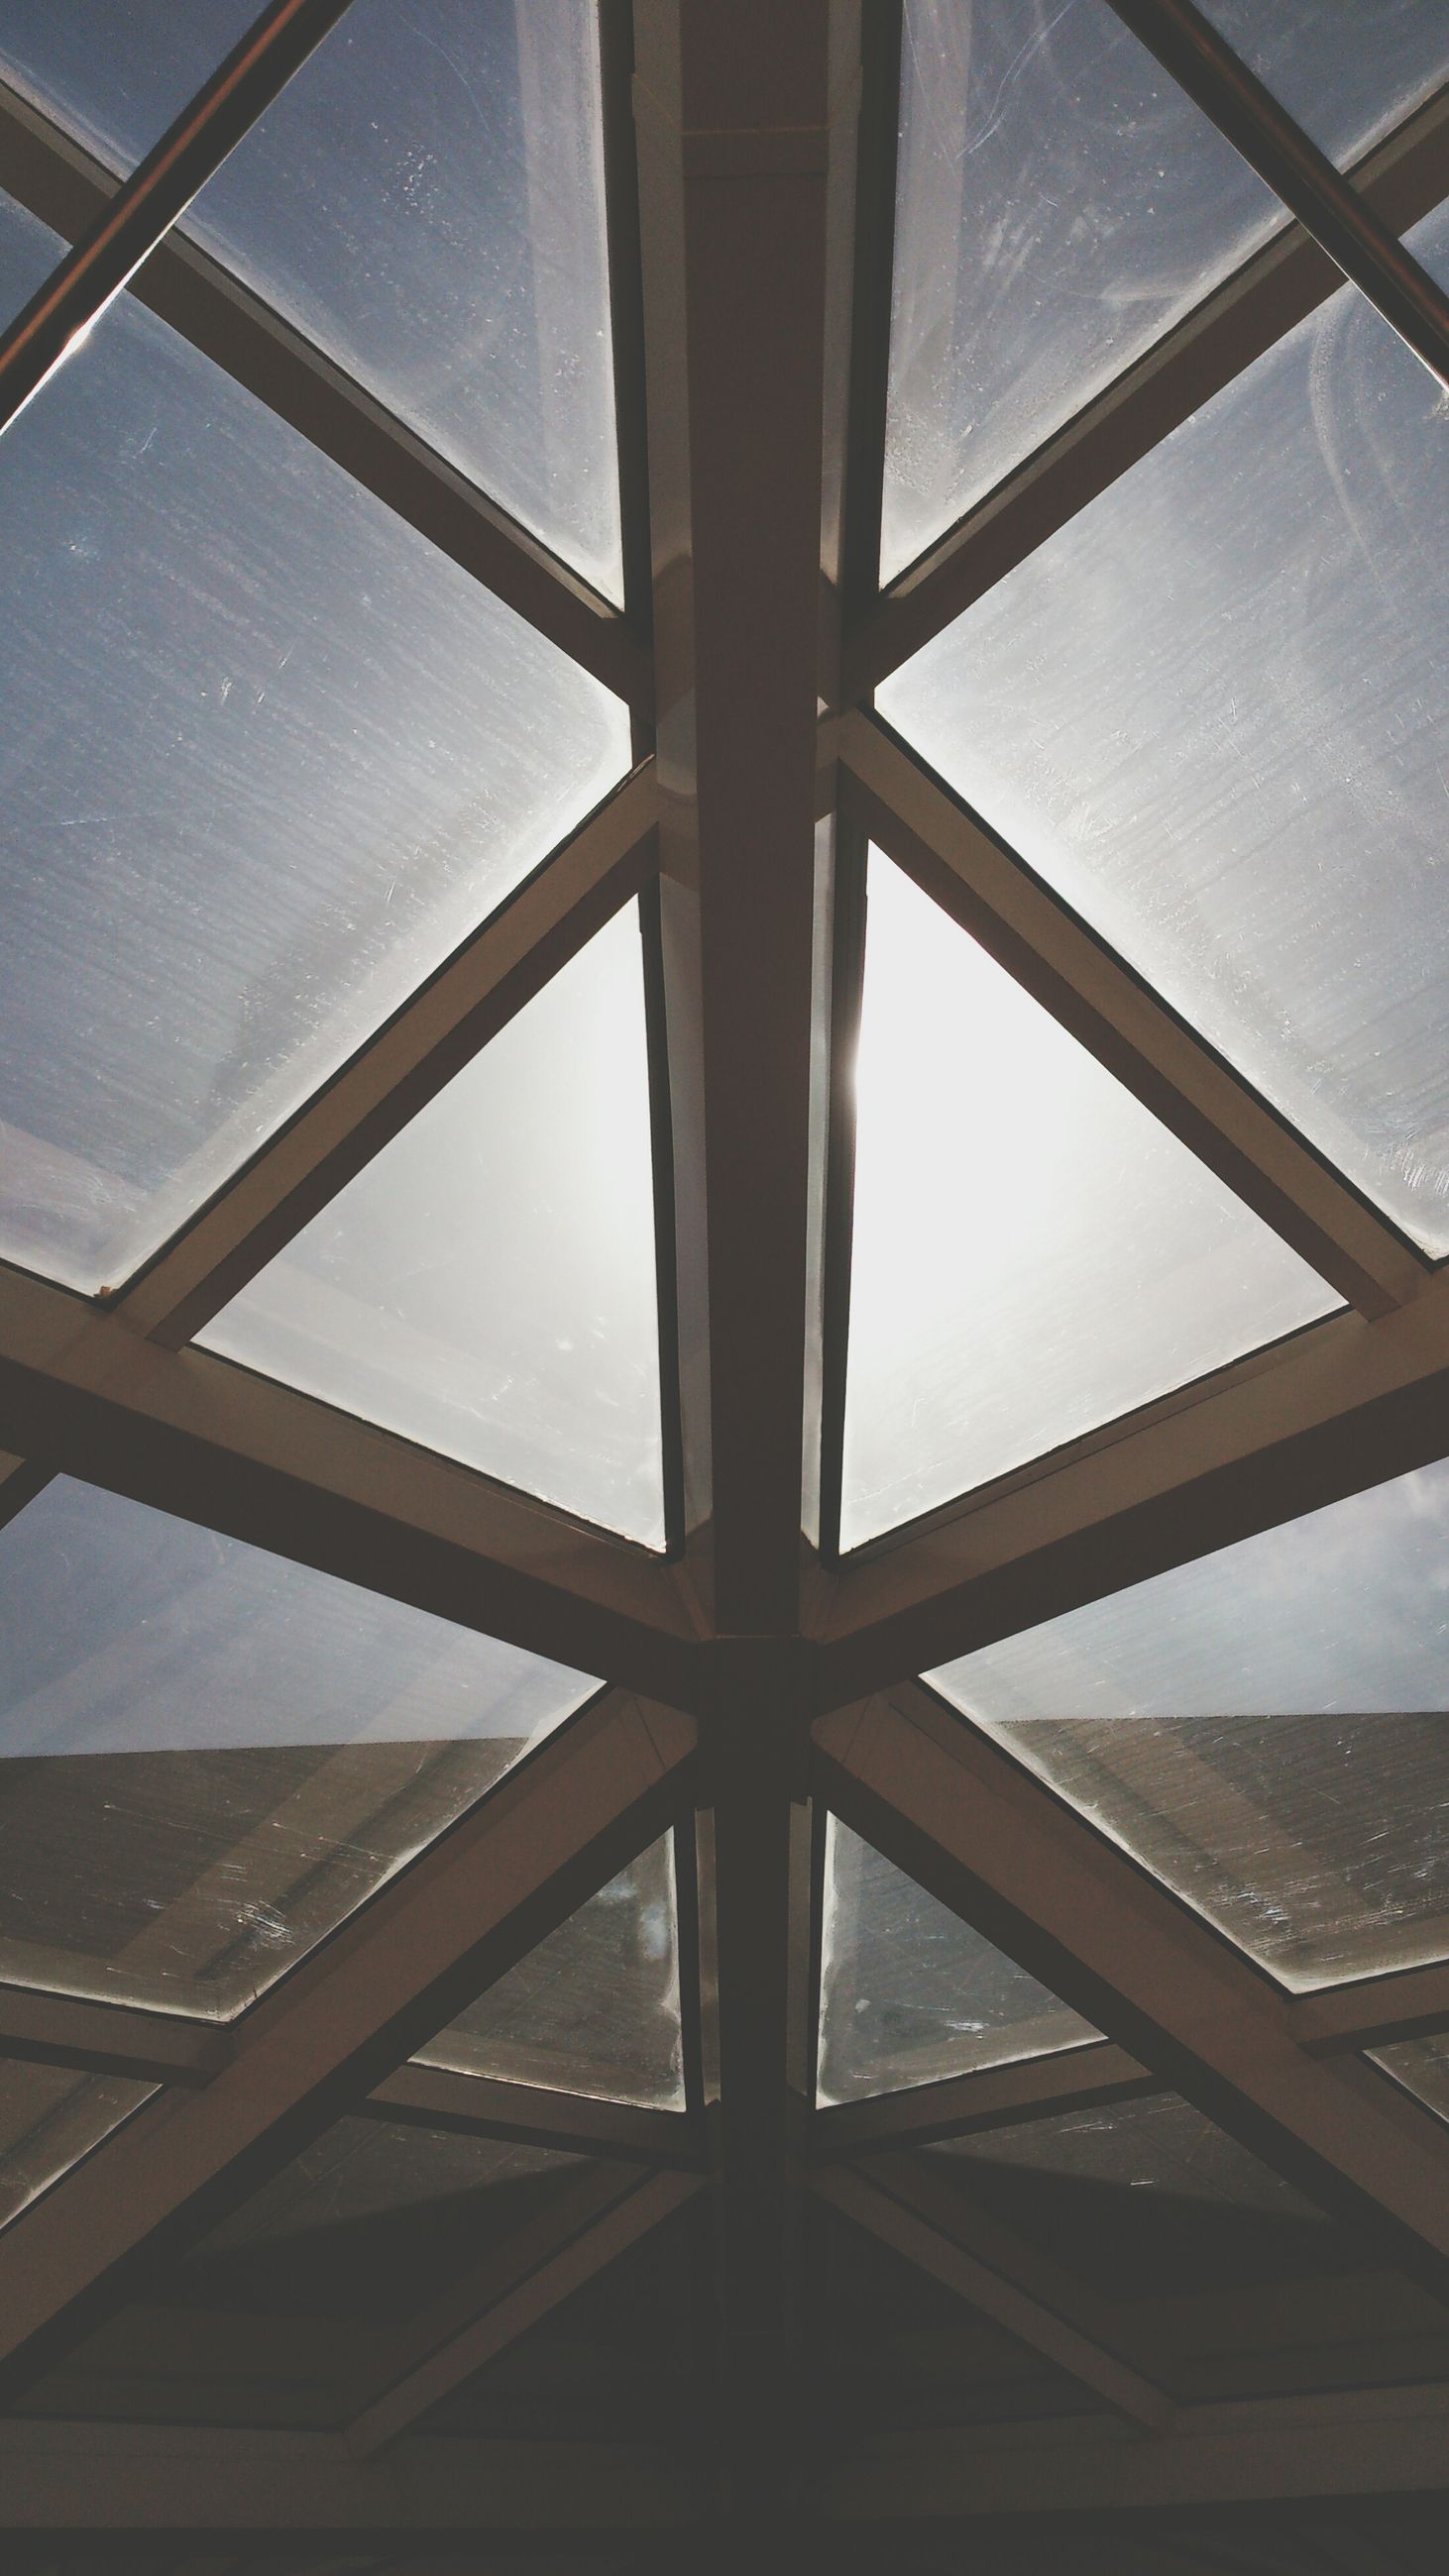 low angle view, architecture, built structure, indoors, ceiling, glass - material, window, directly below, pattern, sky, architectural feature, skylight, modern, transparent, geometric shape, building exterior, day, full frame, design, no people